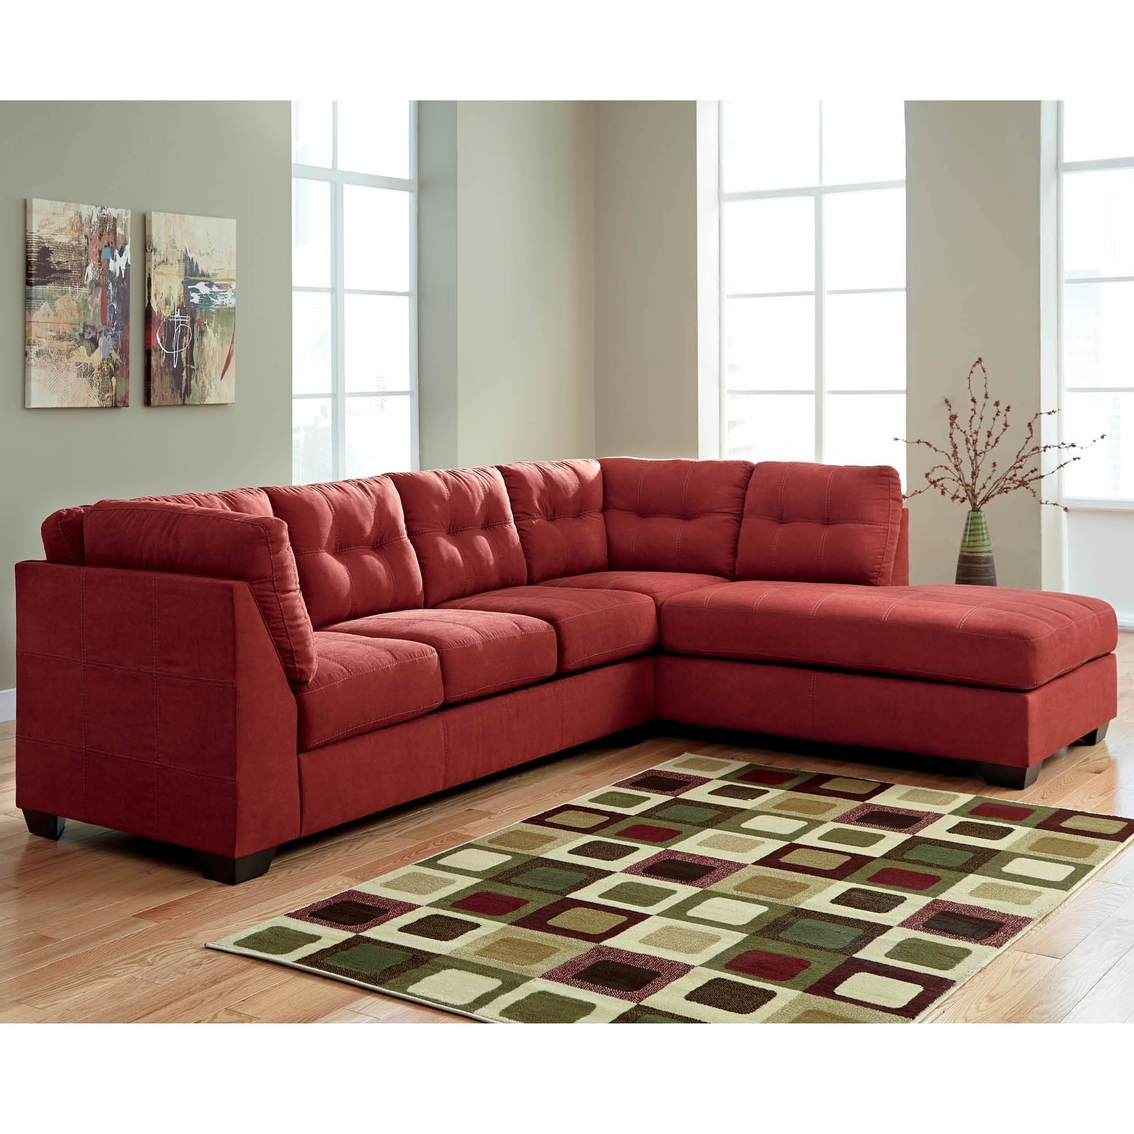 Benchcraft maier raf corner chaise and laf sofa set for Benchcraft chaise lounge